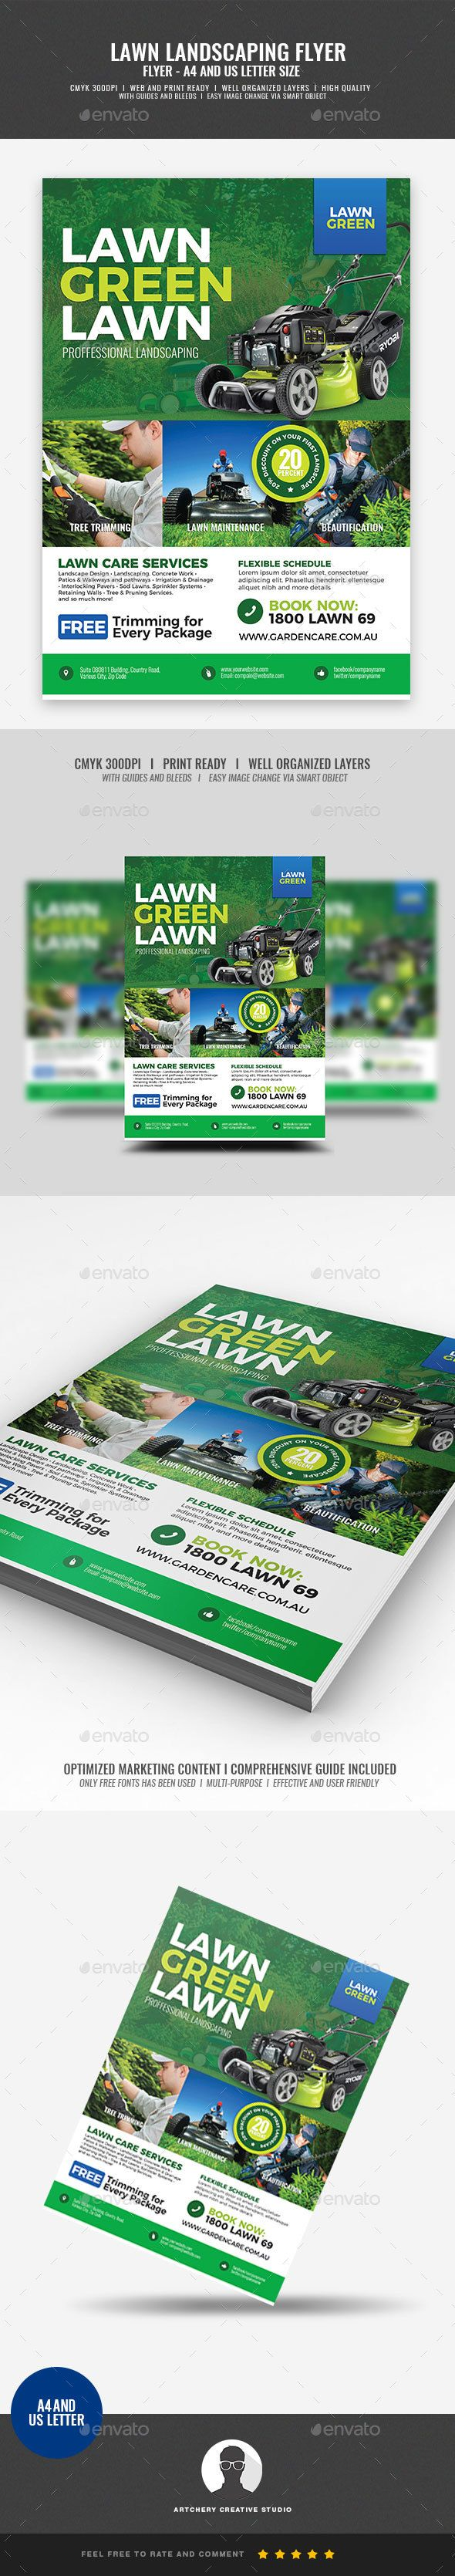 landscaping and lawn care flyer corporate flyers corporate flyer design pinterest flyer design flyer design templates and flyer template